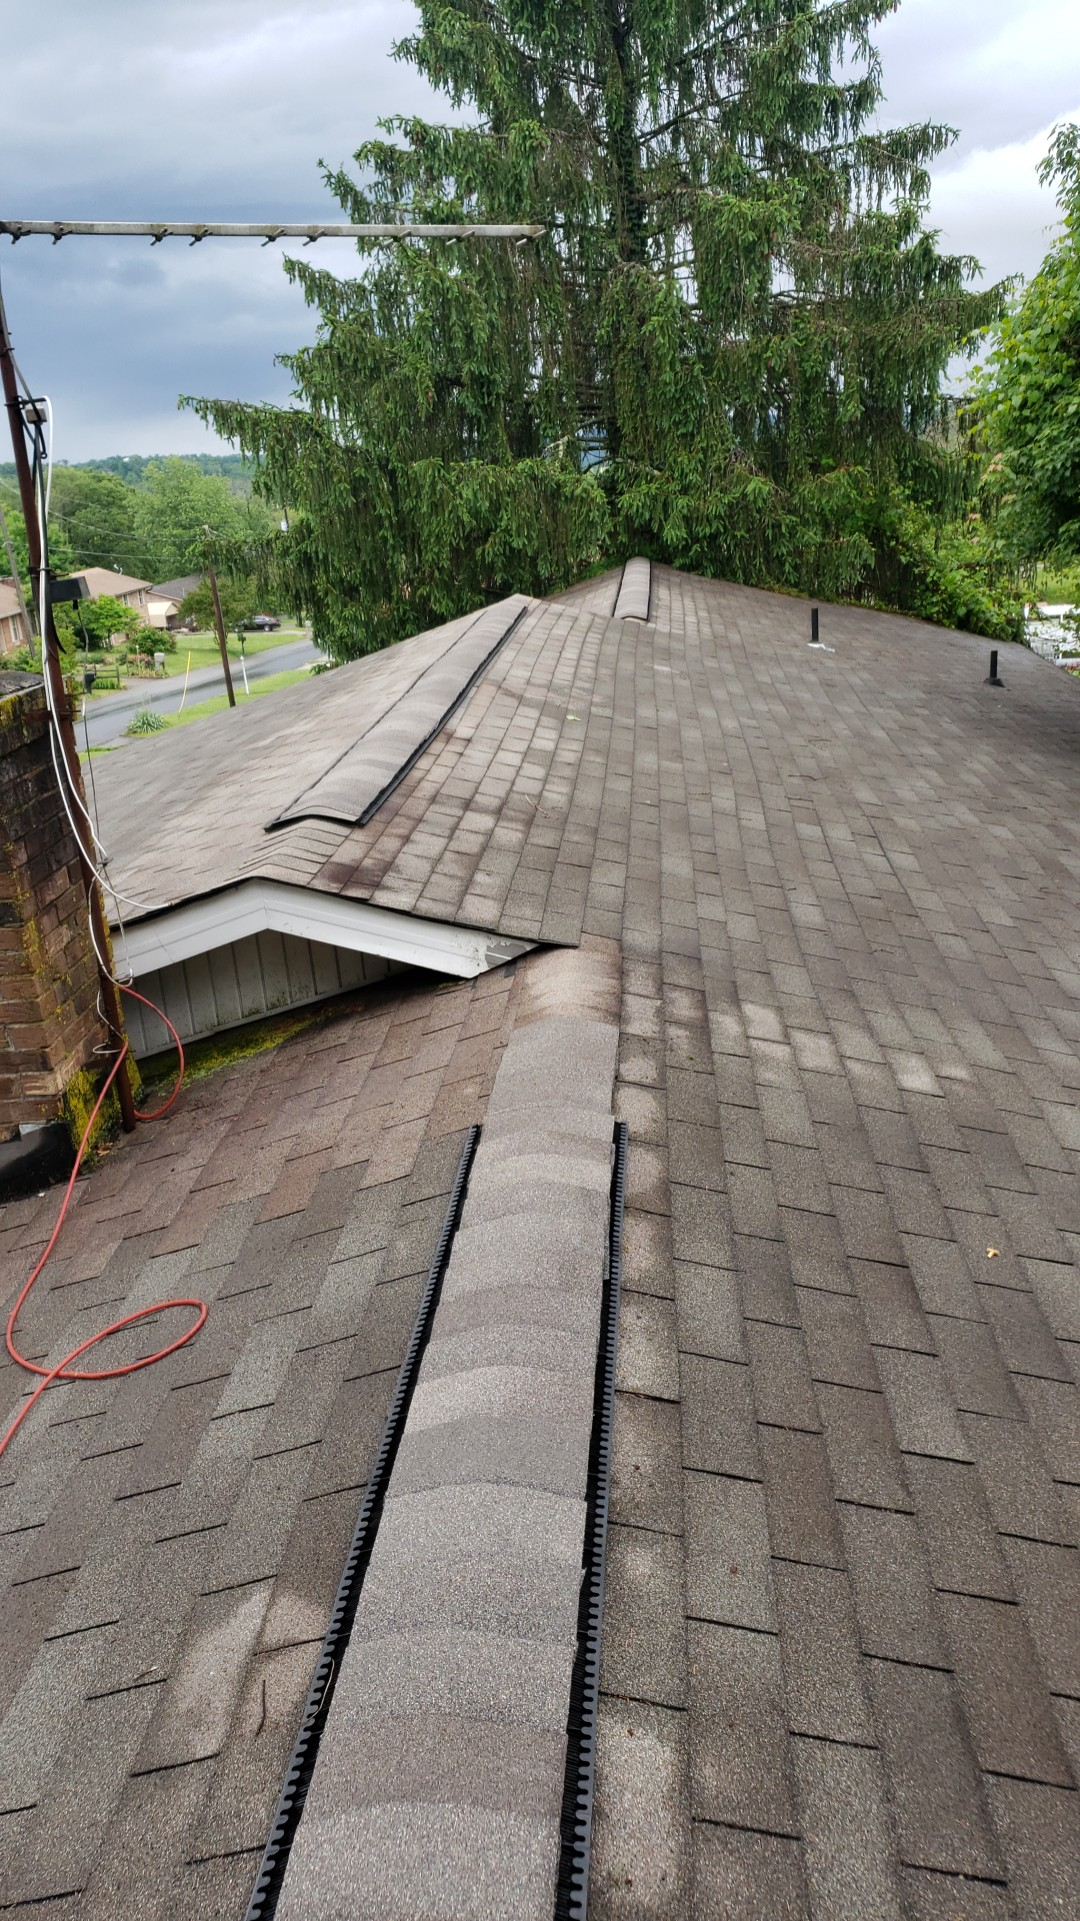 This is an image showing all  three ridges of the roof.